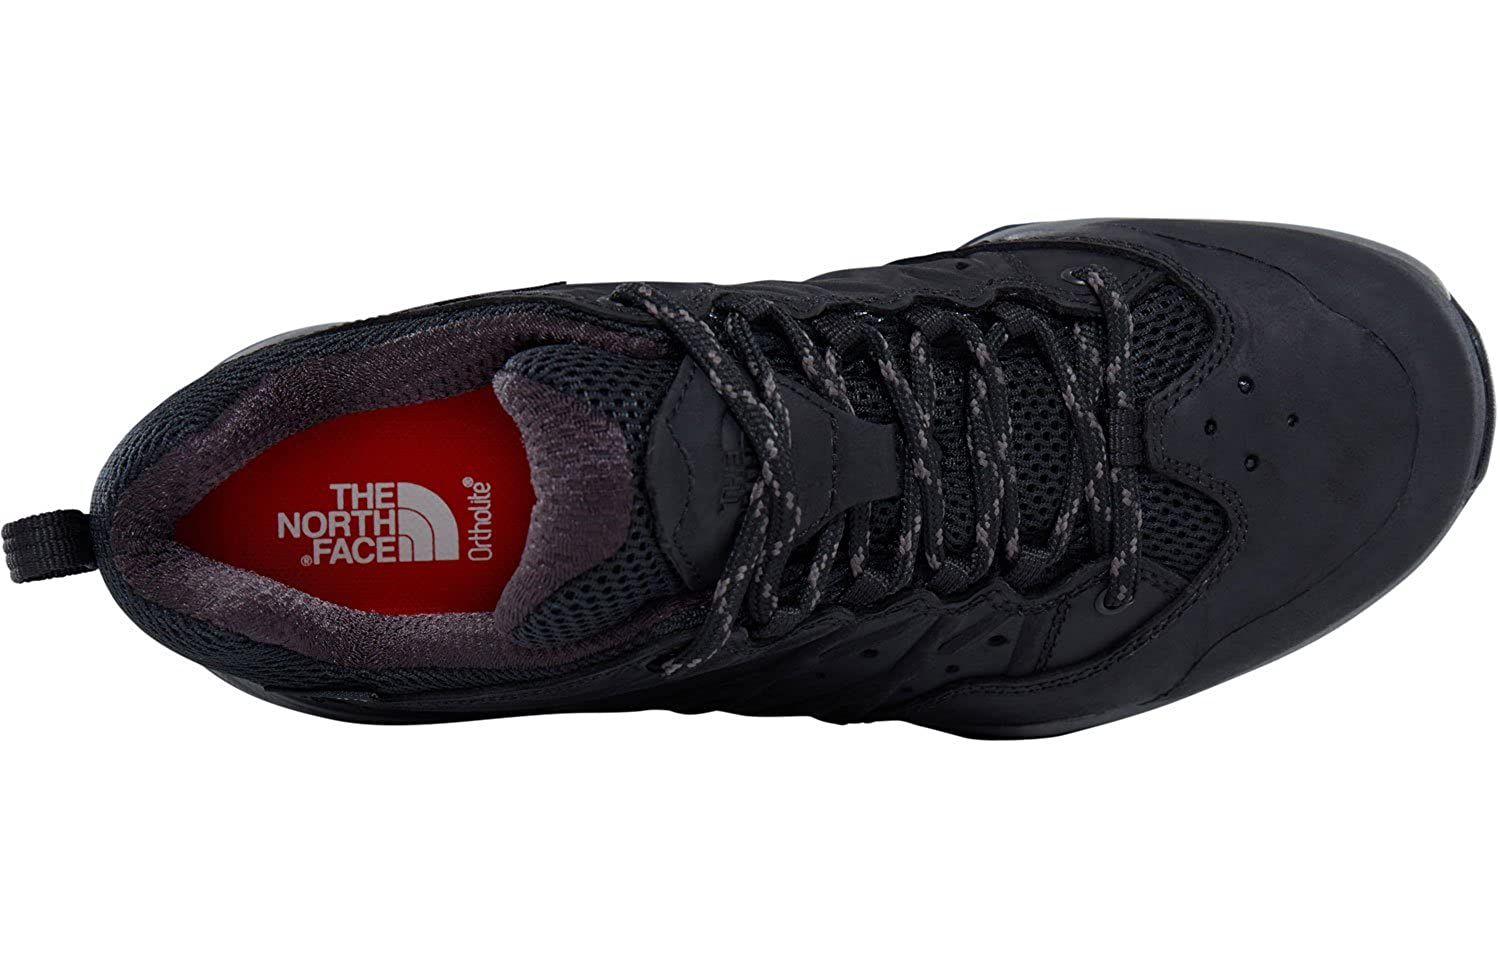 The North Face Damen W Hh Hike Ii Gtx Trekking- & Wanderhalbschuhe